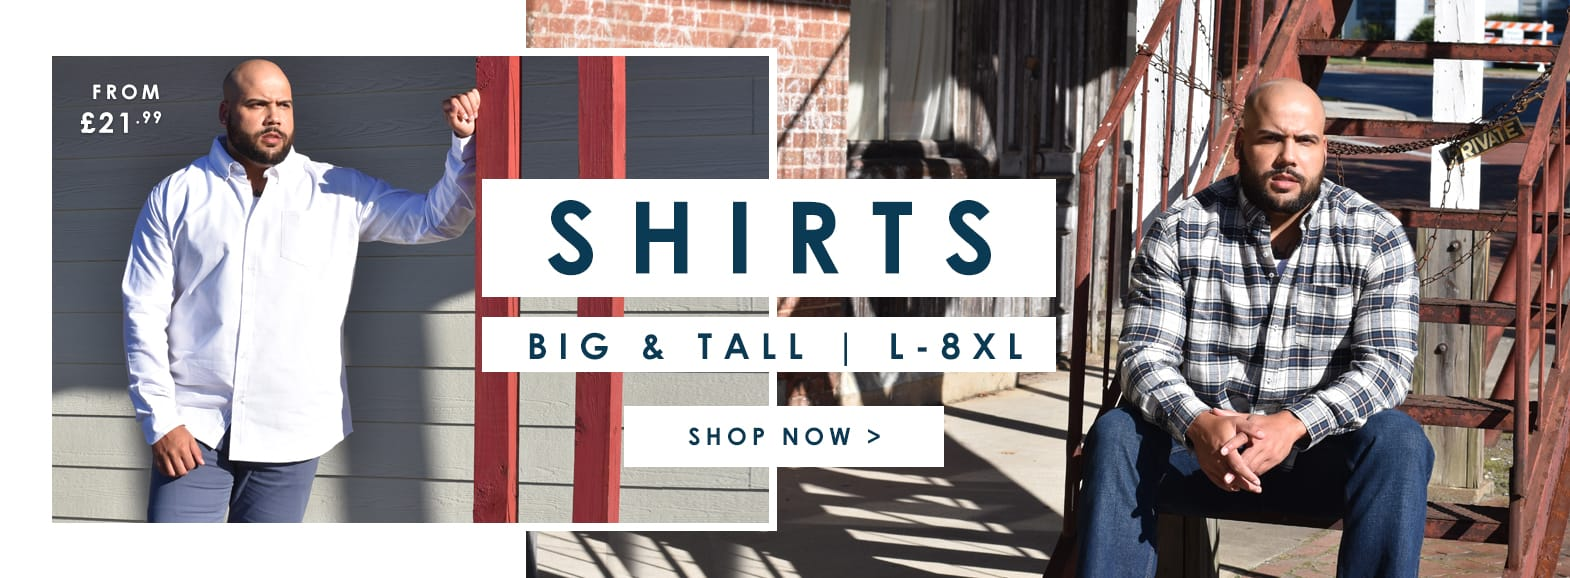 Shop Big and tall mens shirts >